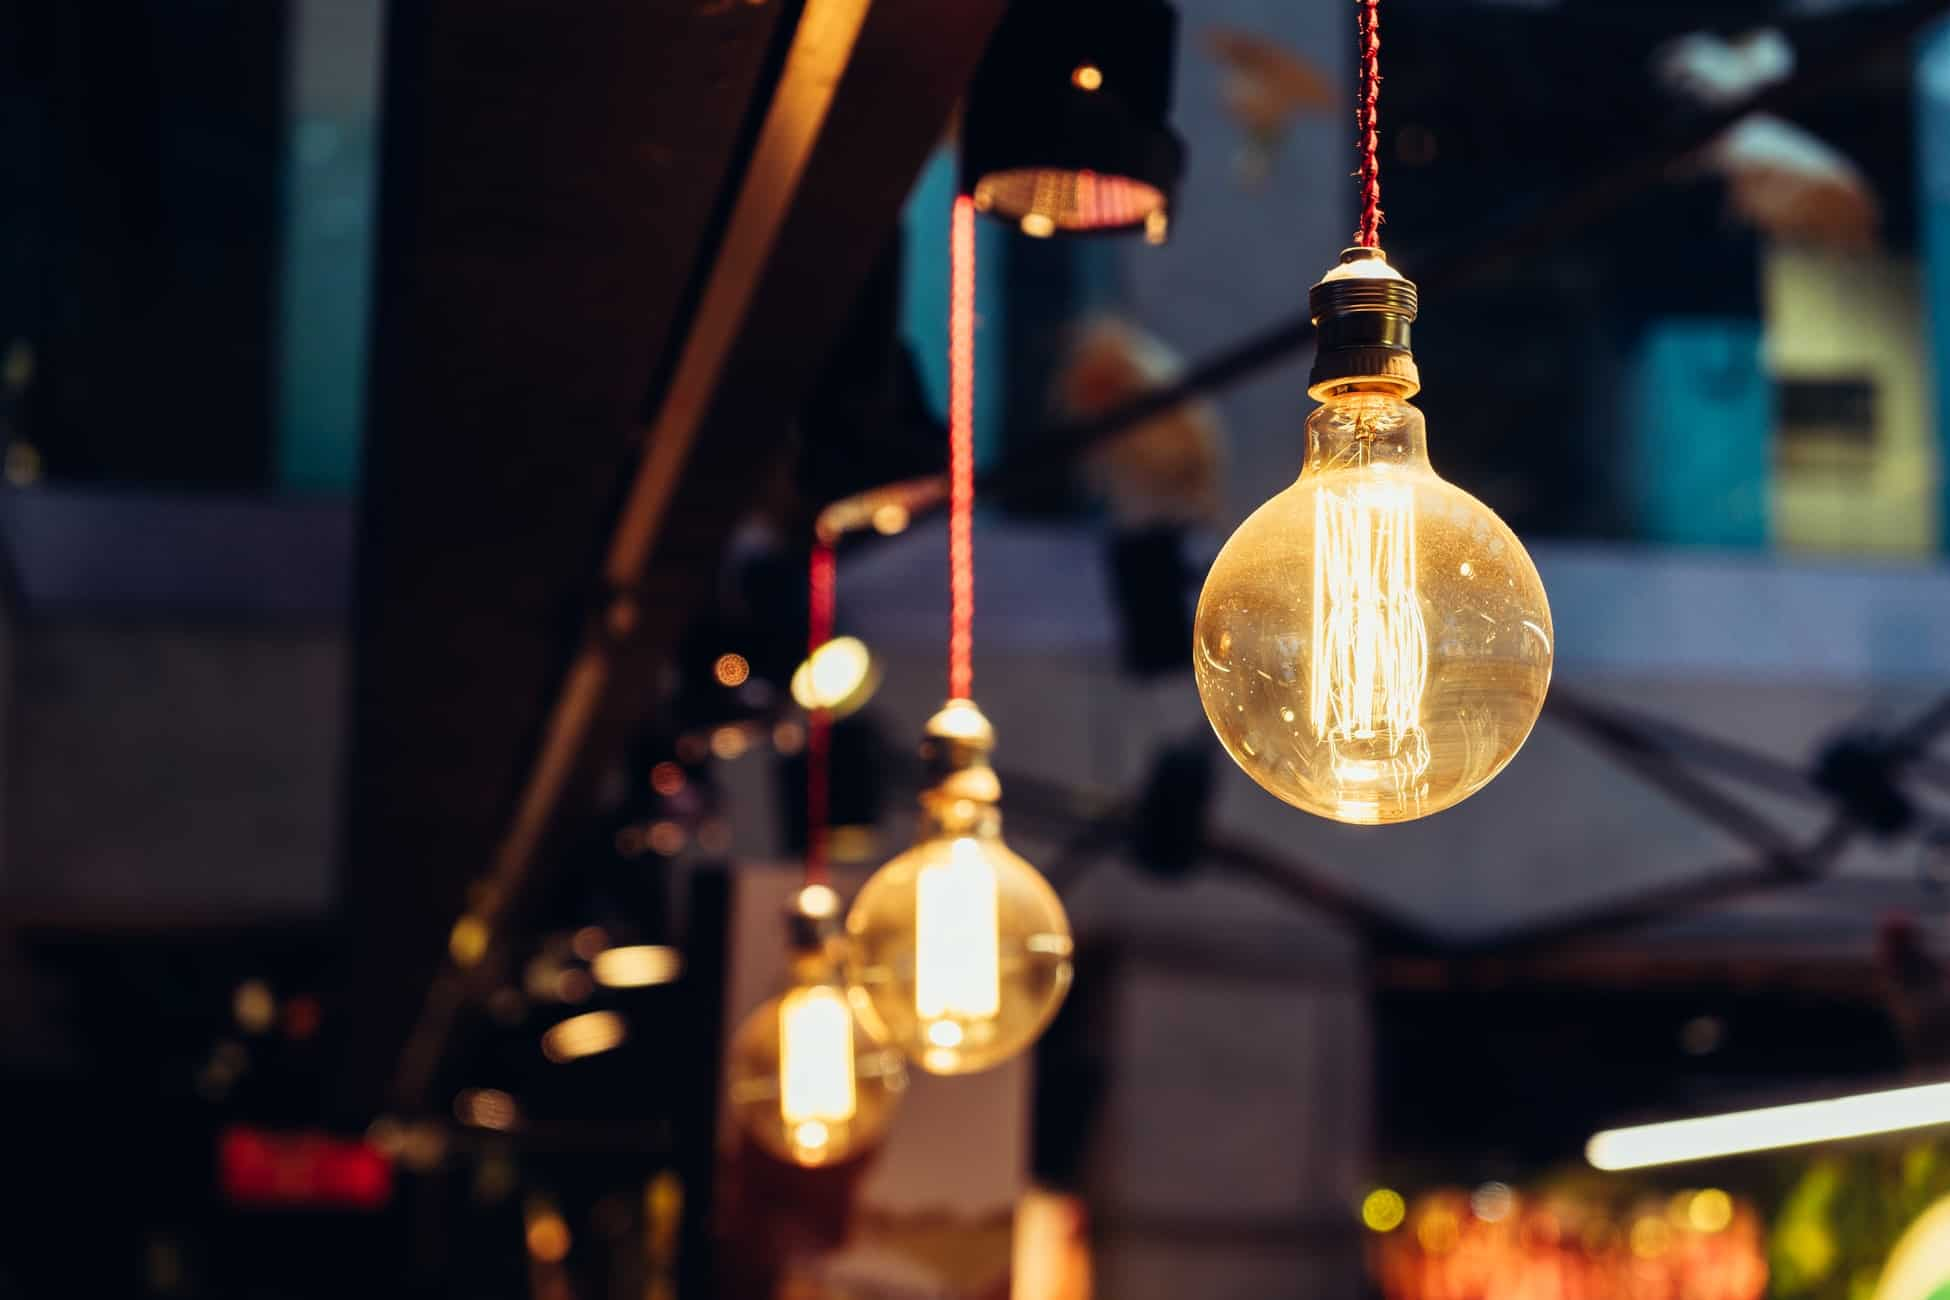 Why Do Lamps Have a Maximum Wattage?